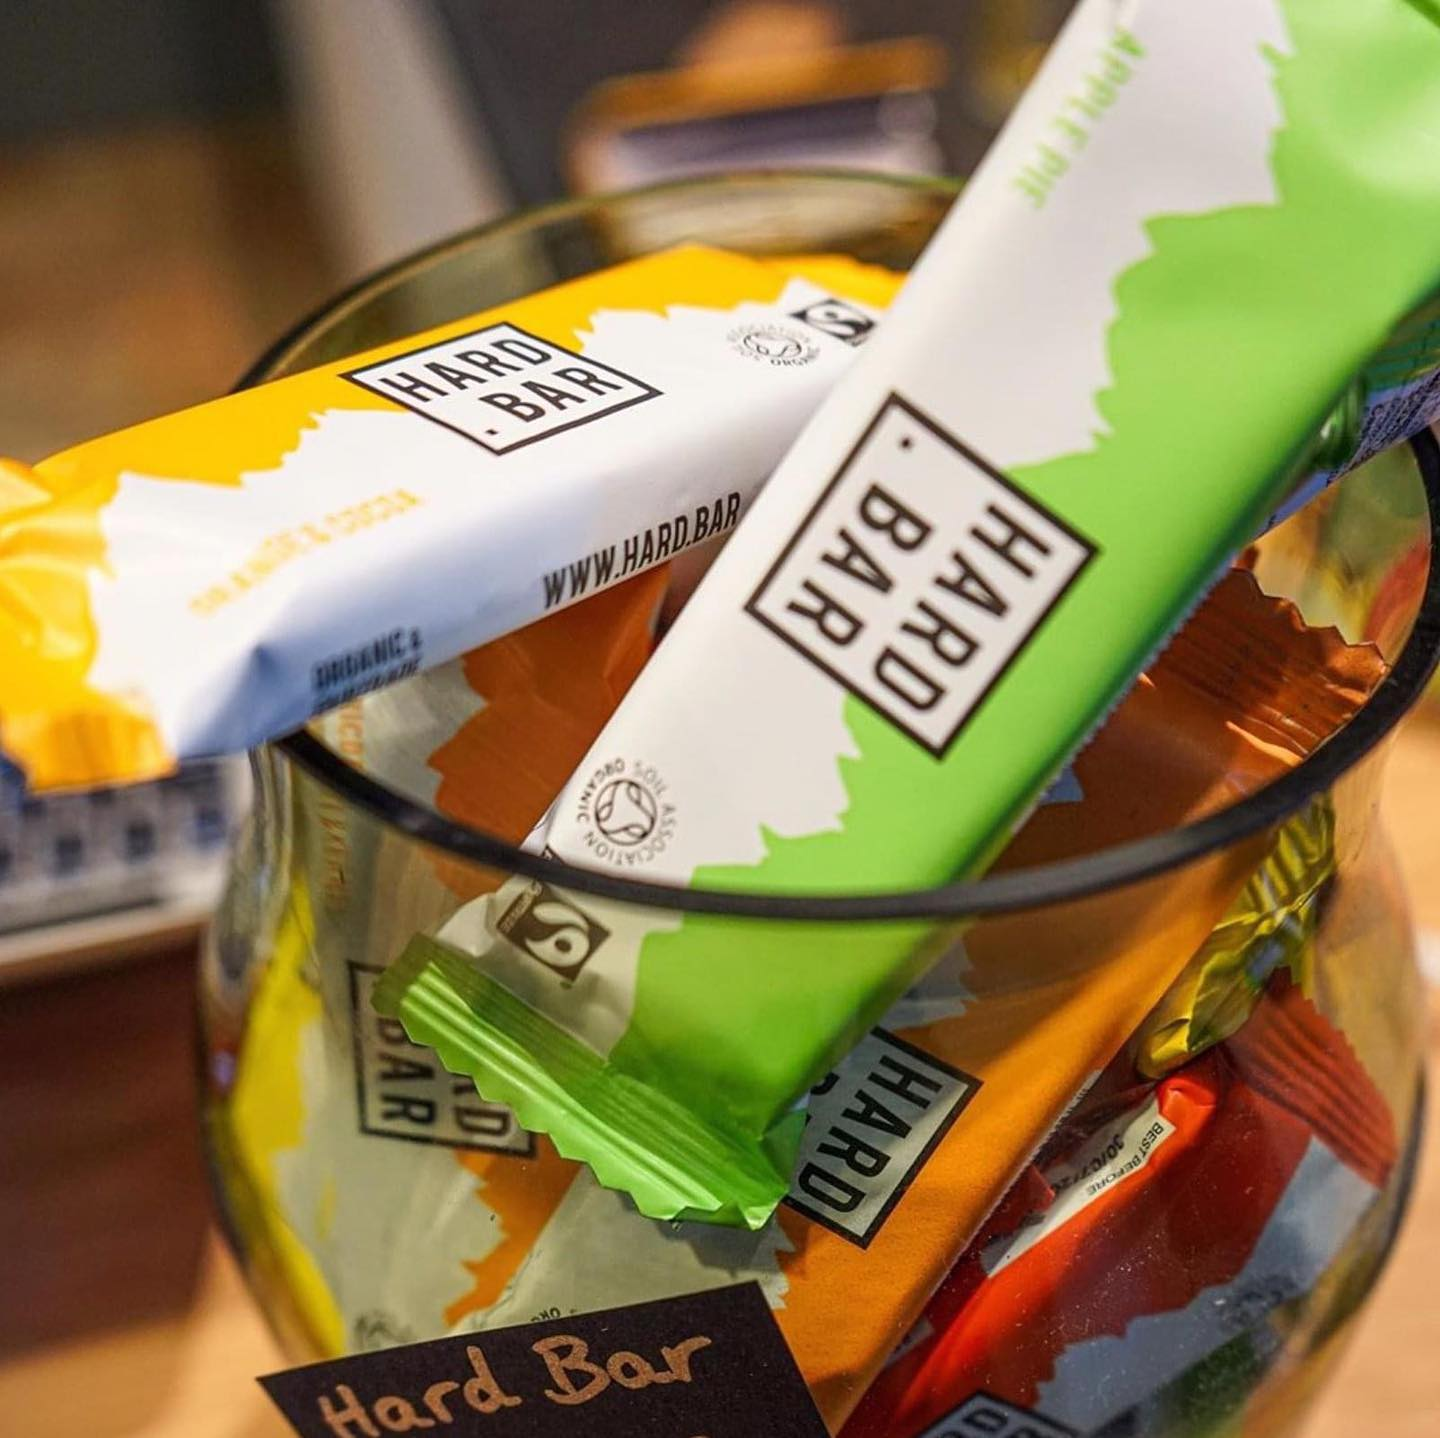 We're so excited to be offering Vegan, Ethical, Plastic-Negative Hard Bars at our checkpoints thi...